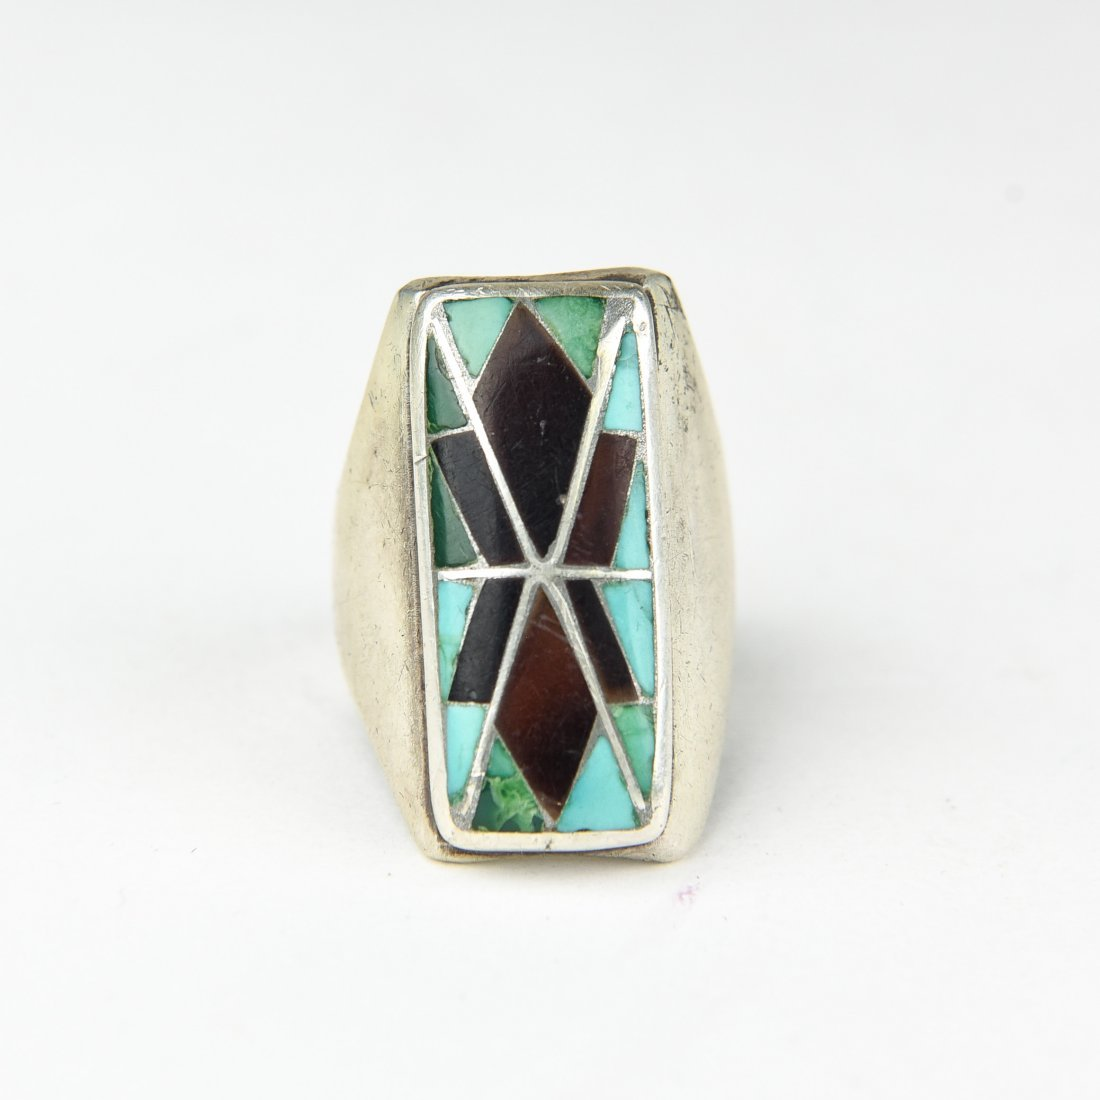 INLAID TURQUOISE & ONYX RING